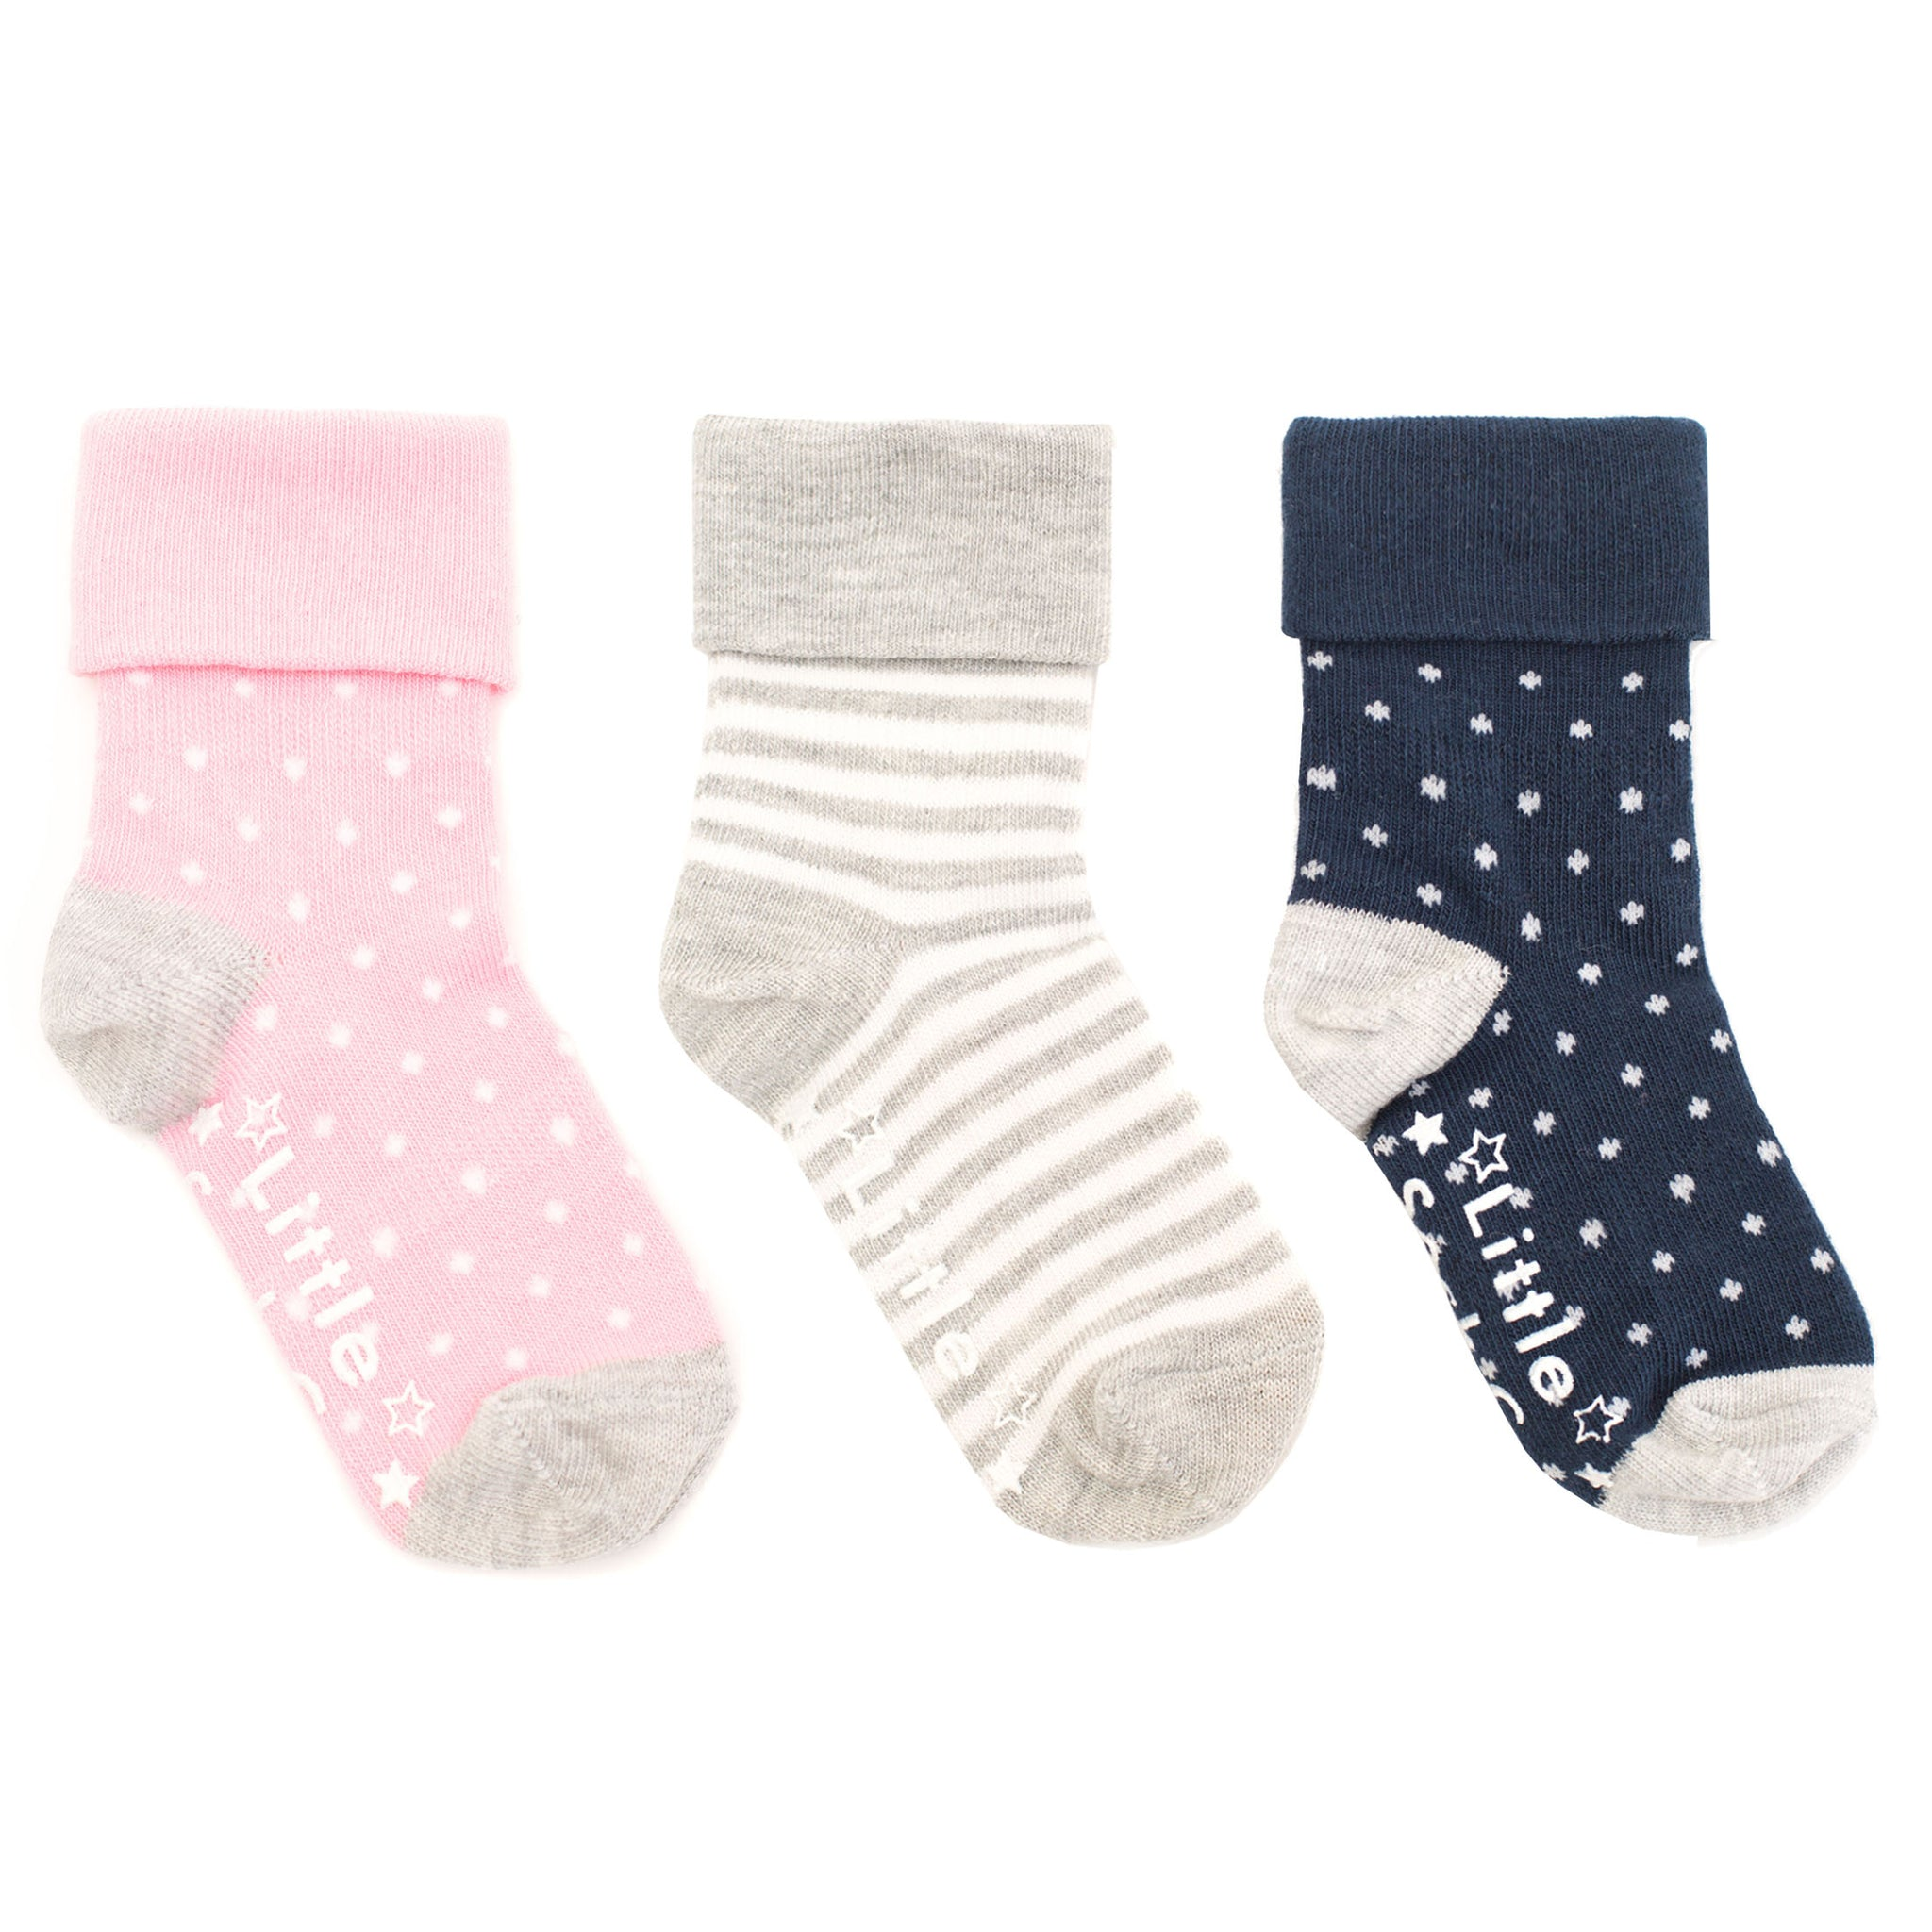 Non-Slip Stay on Socks - 3 Pack in Candy Pink, Navy & Grey Marl